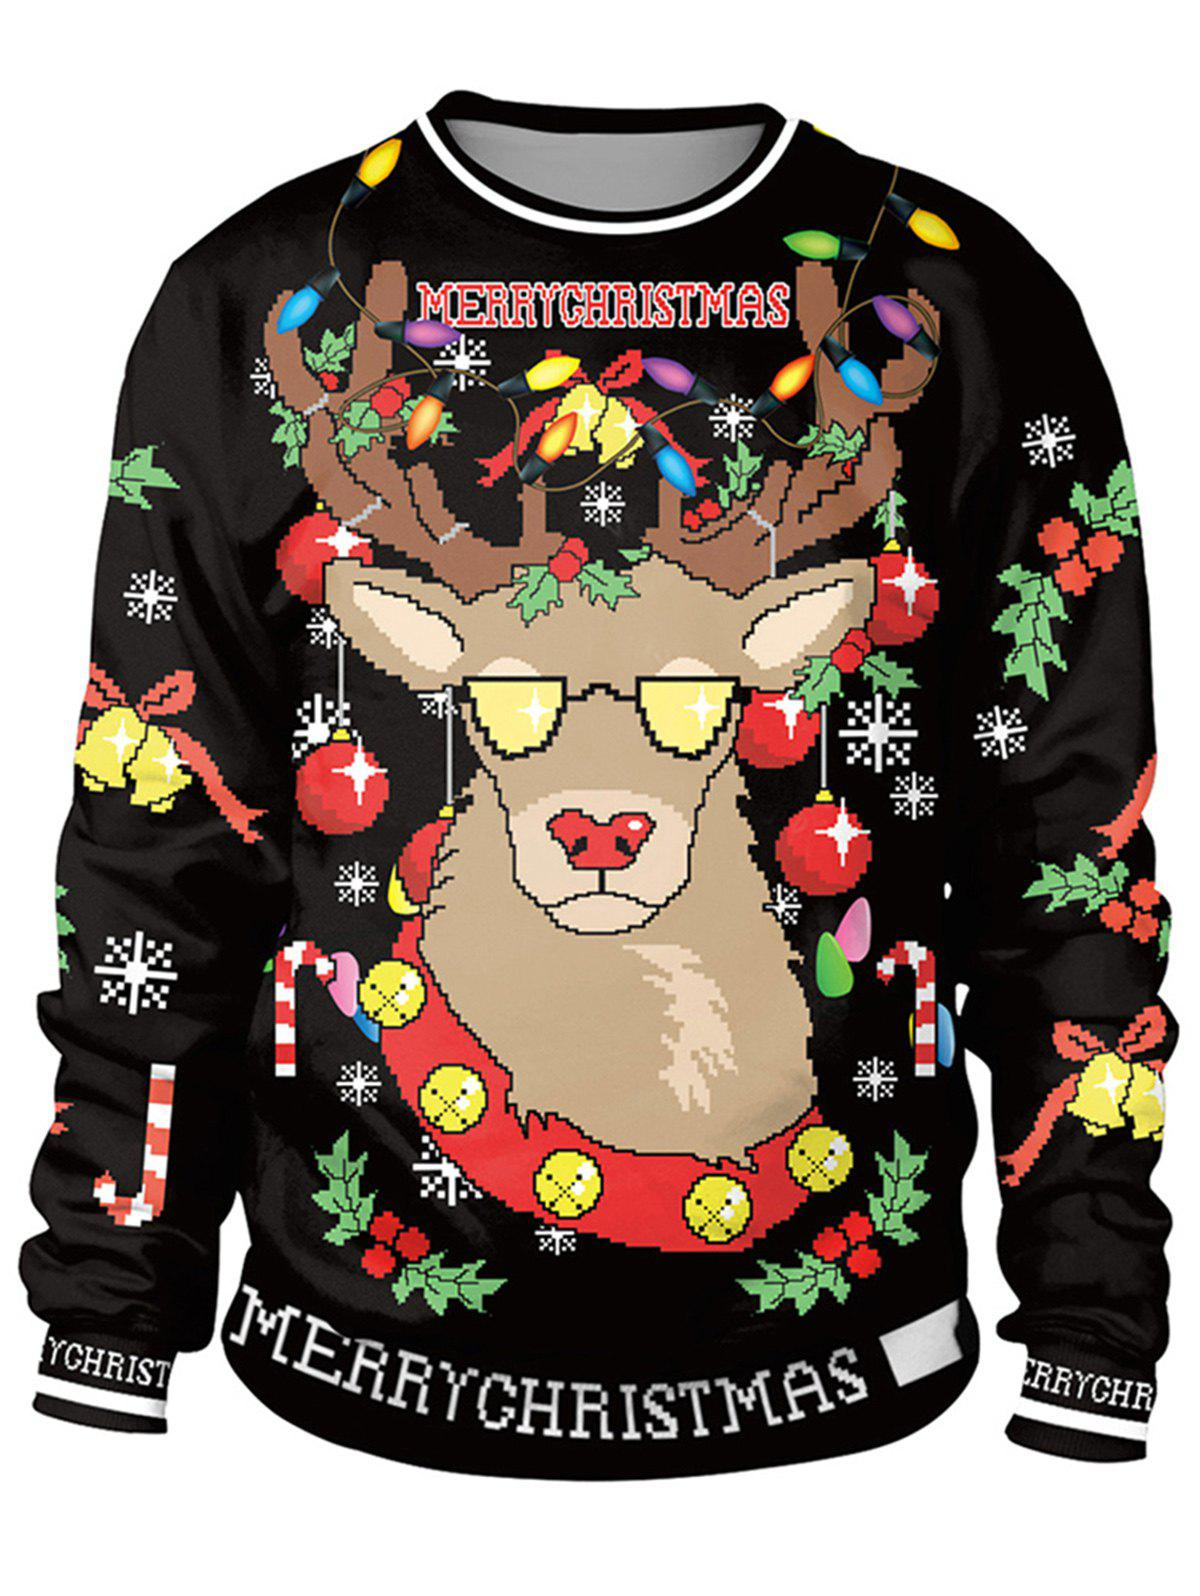 Discount Unisex Funny 3D Graphic Print Reindeer Christmas  Sweatshirt for Xmas Party